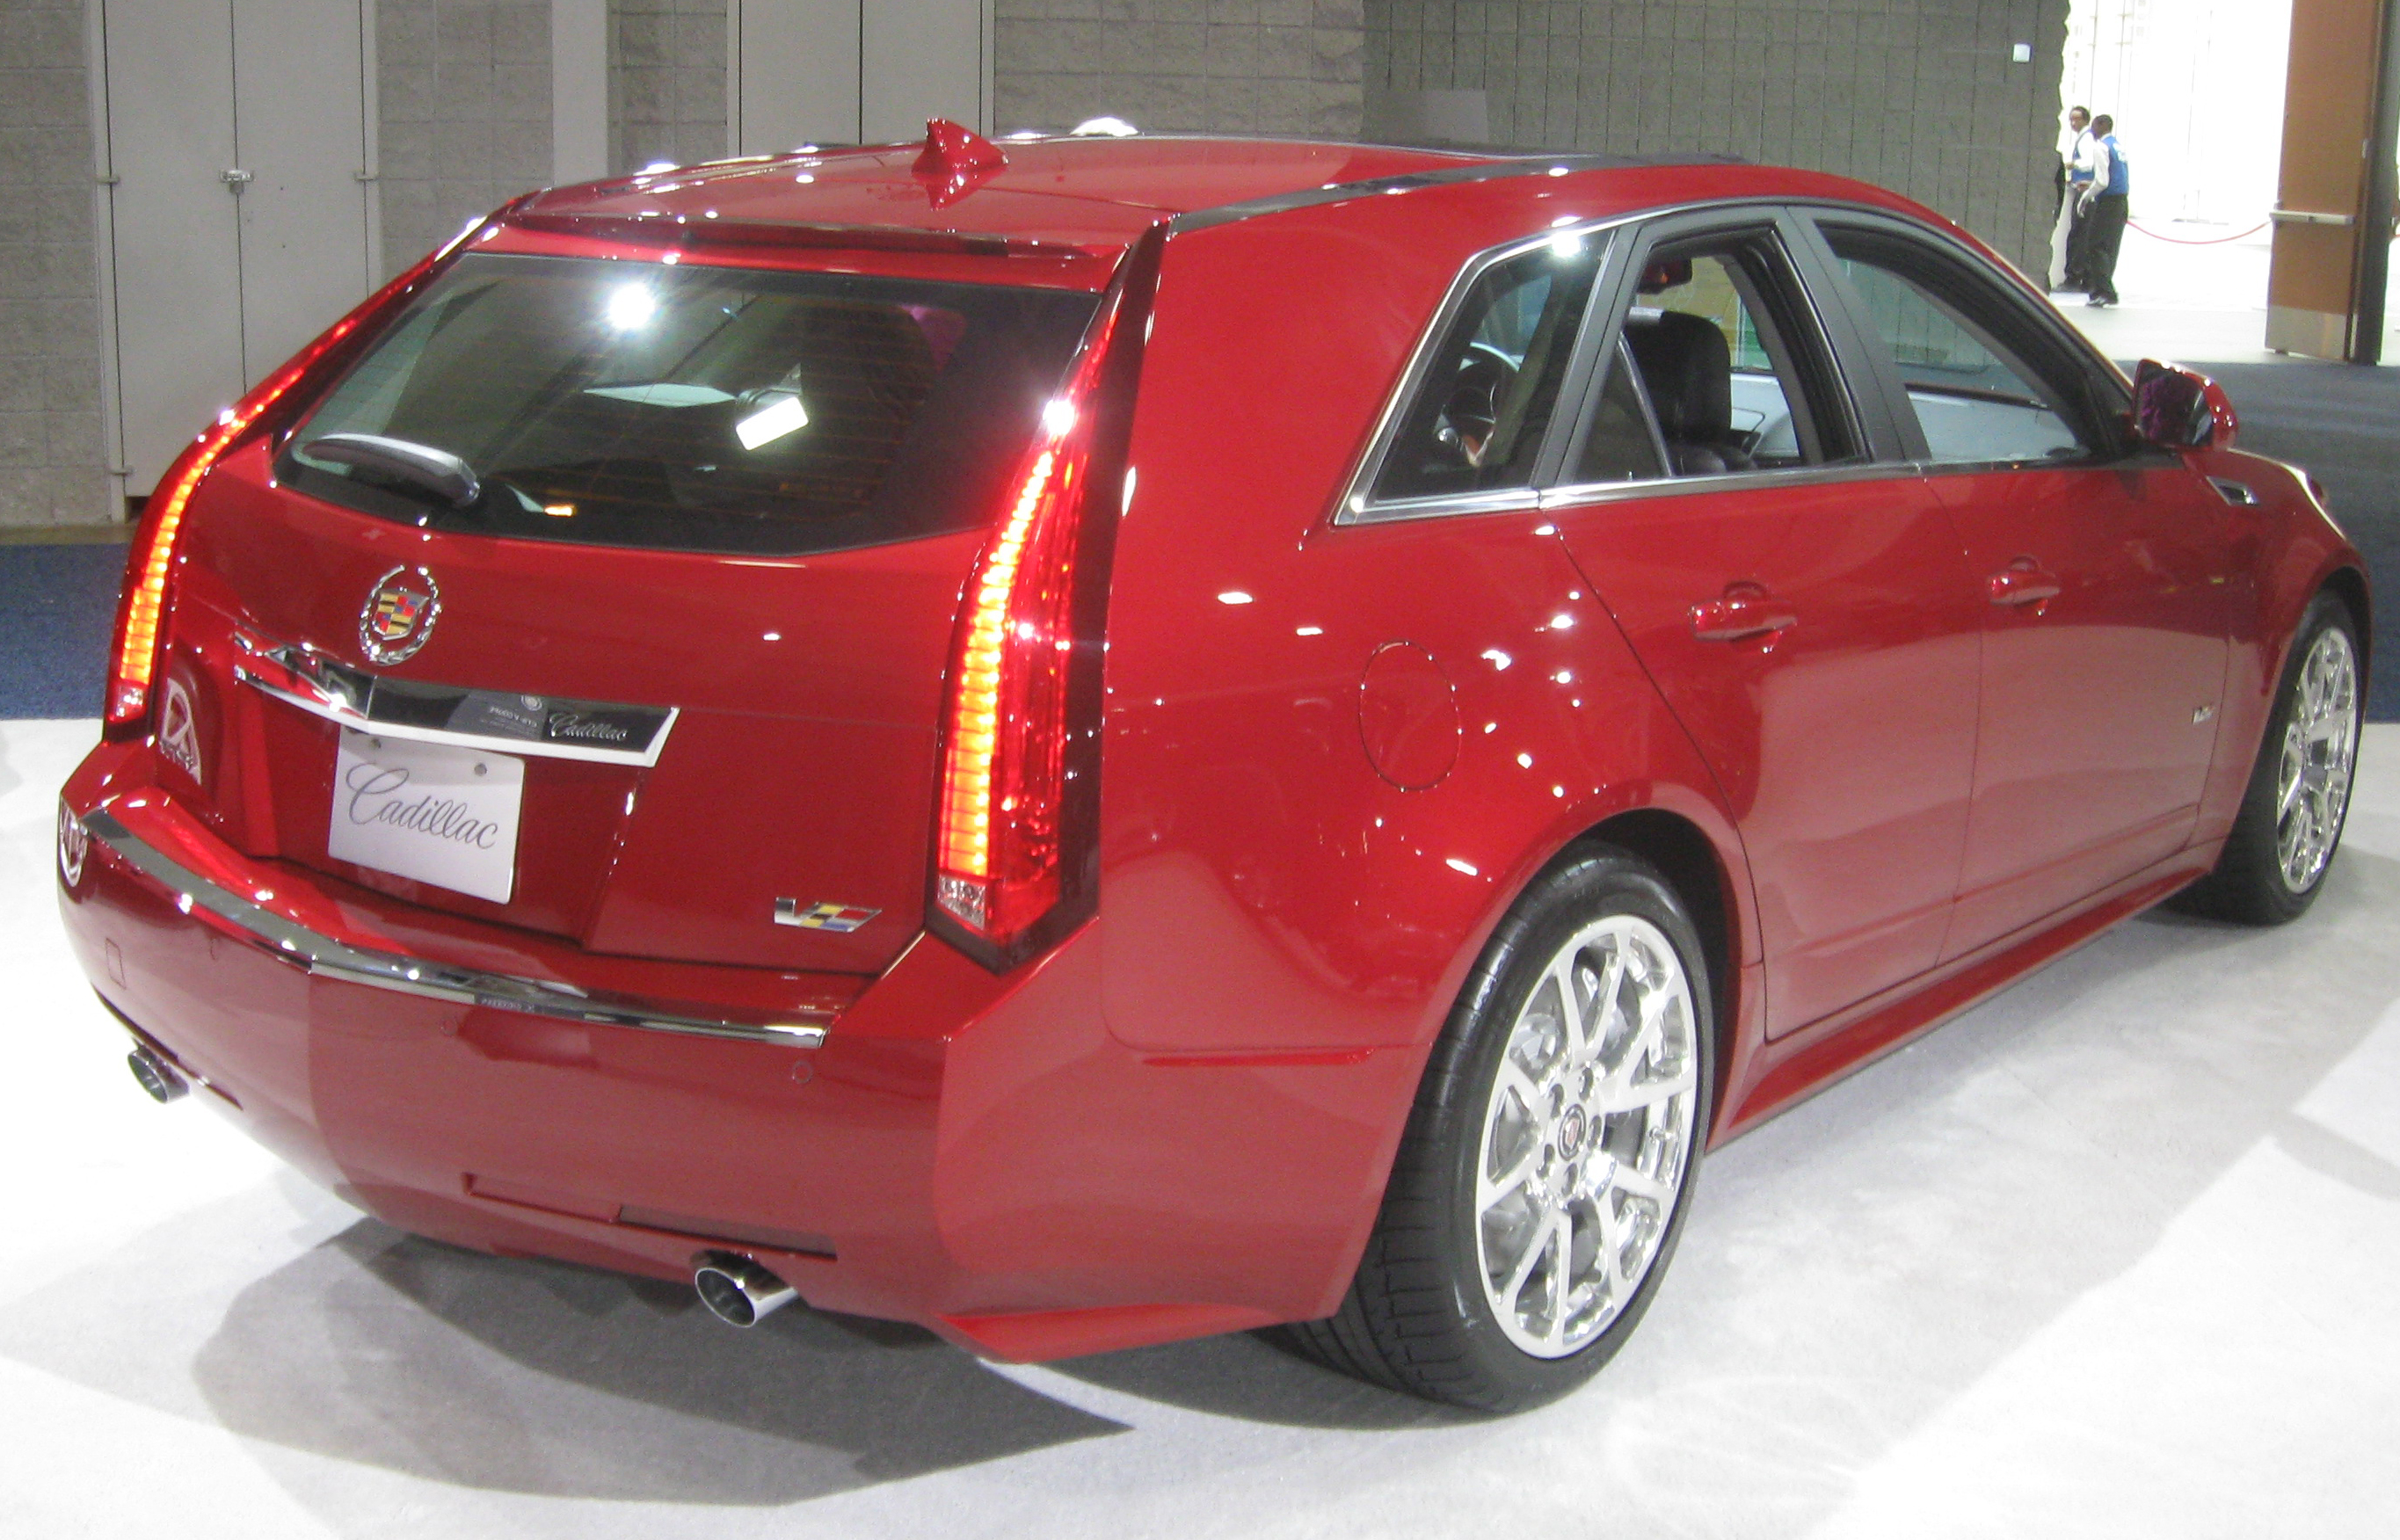 file 2011 cadillac cts v wagon rear 2011 wikimedia commons. Black Bedroom Furniture Sets. Home Design Ideas